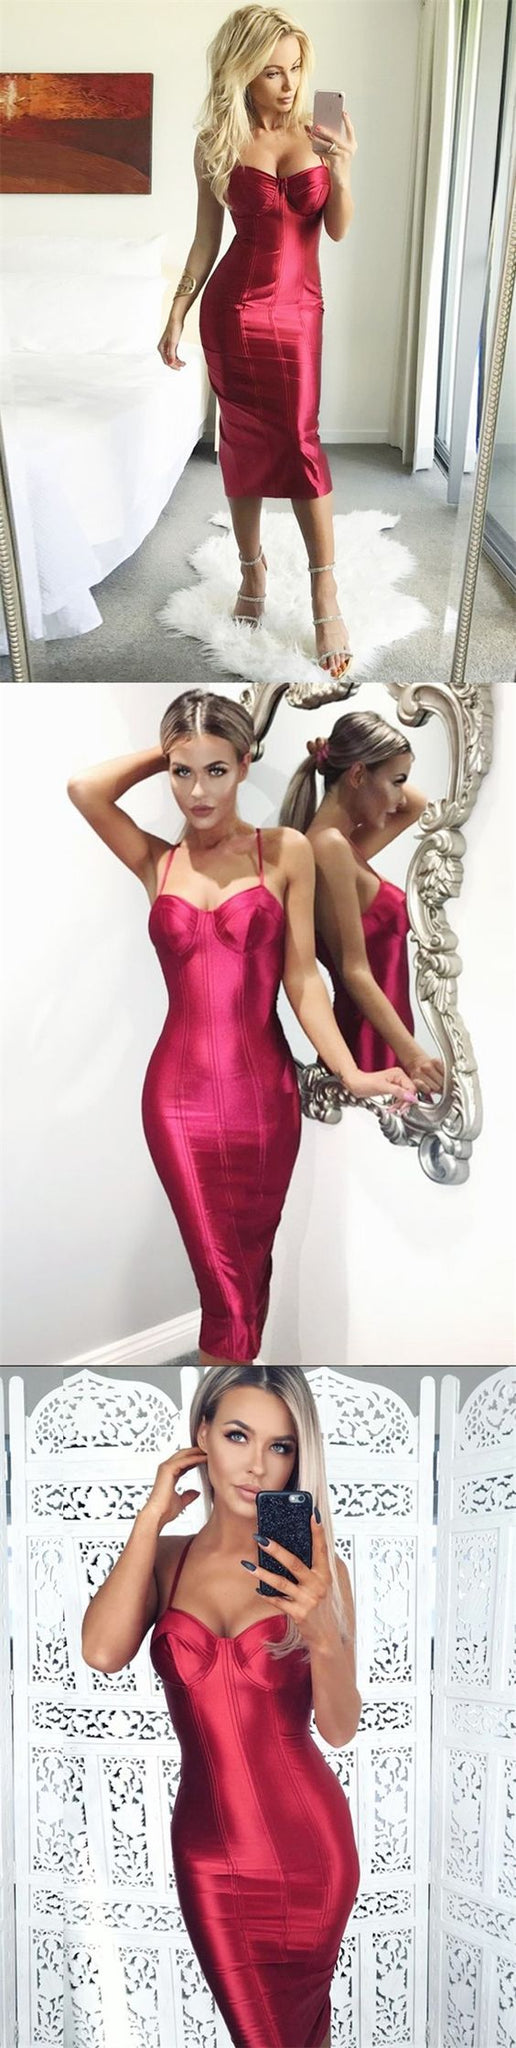 Sheath Spaghetti Straps Mid-Calf Red Stretch Satin Prom Dress, D0588